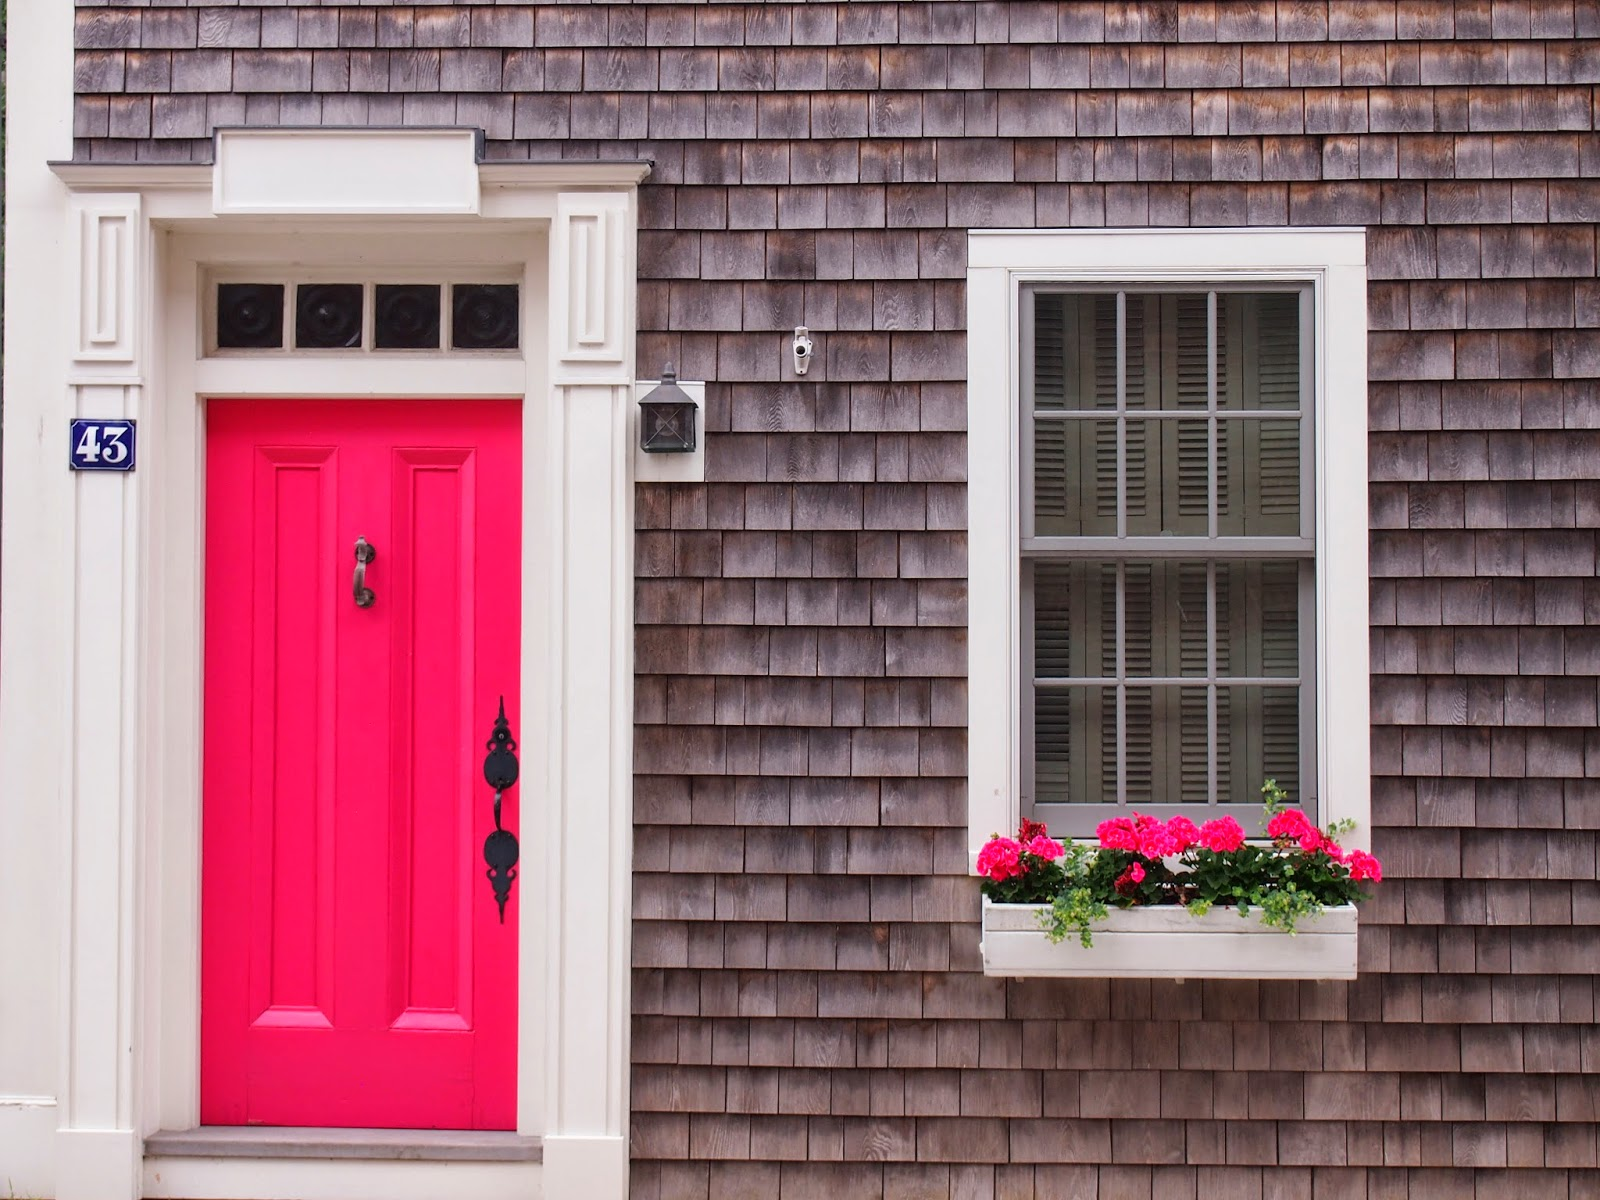 Pink door and pink flowers in Stonington Borough